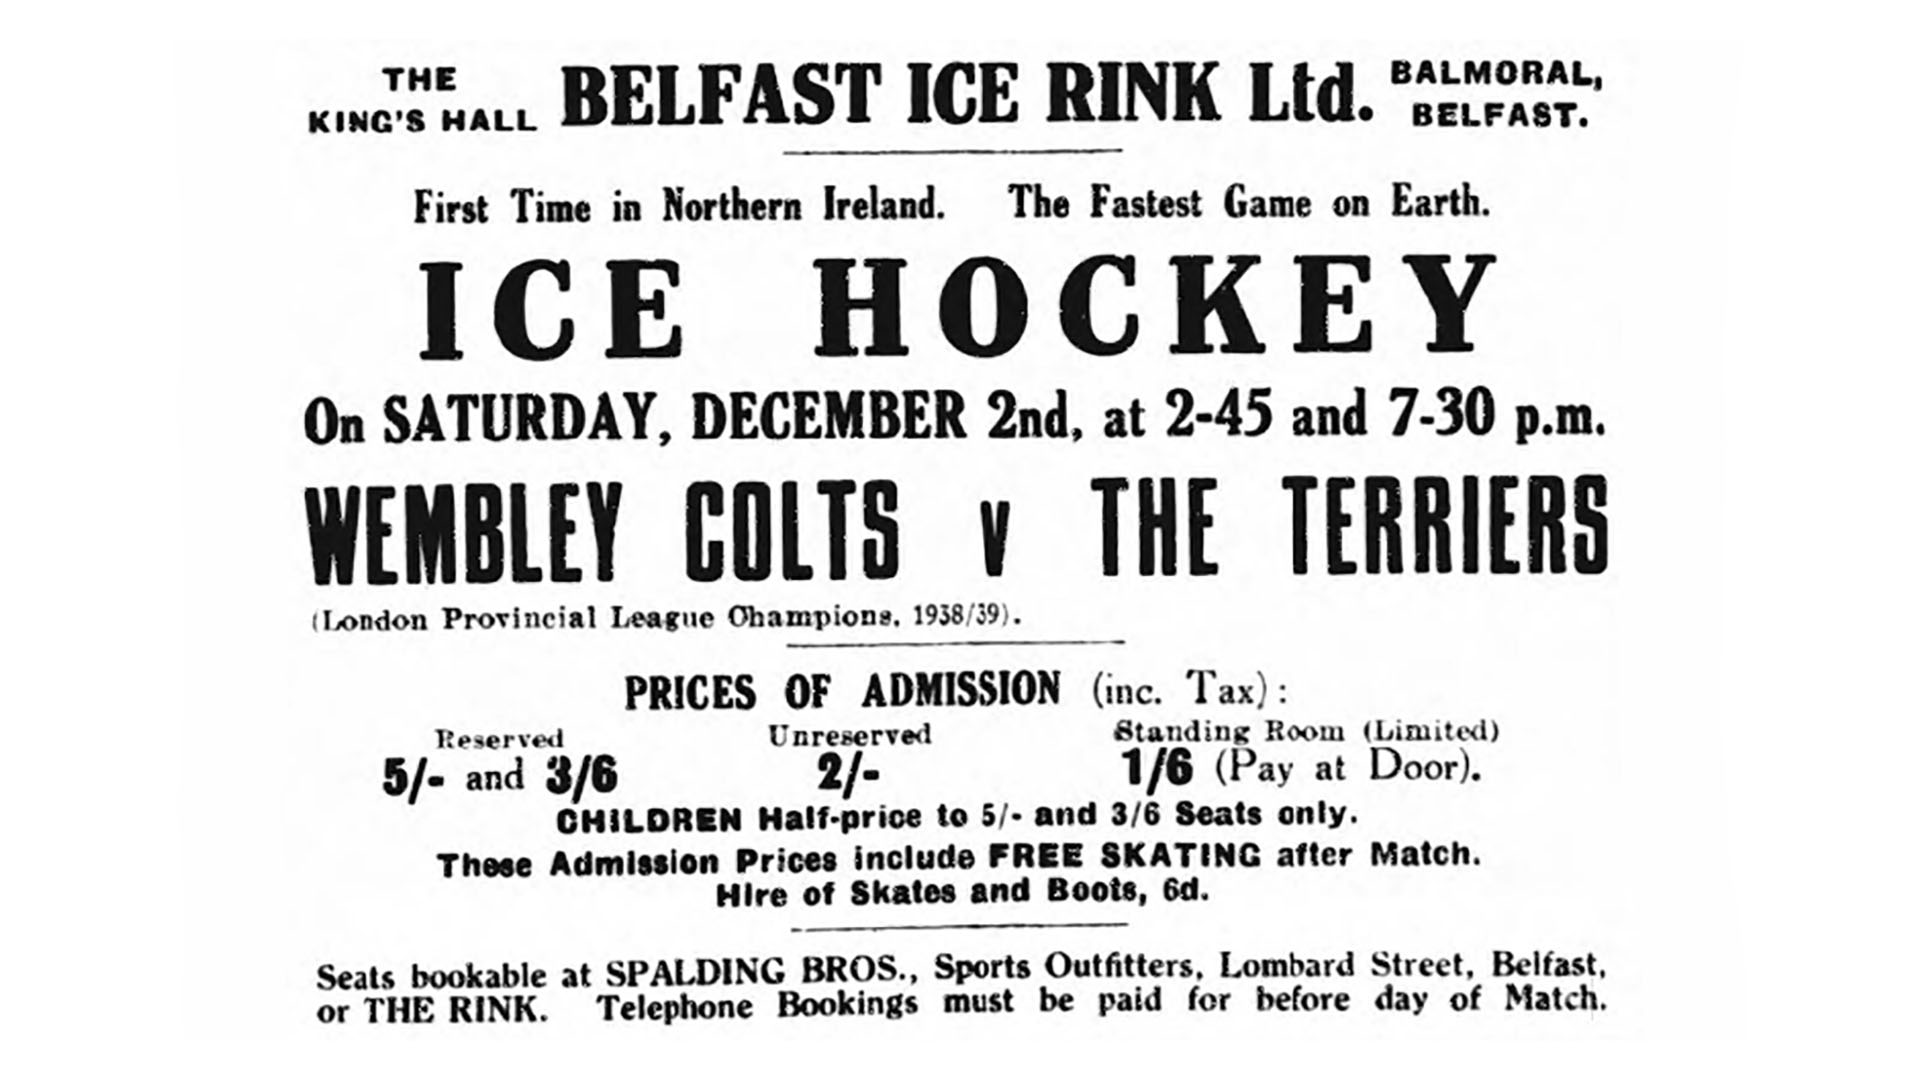 Ice Hockey Advert from 1939